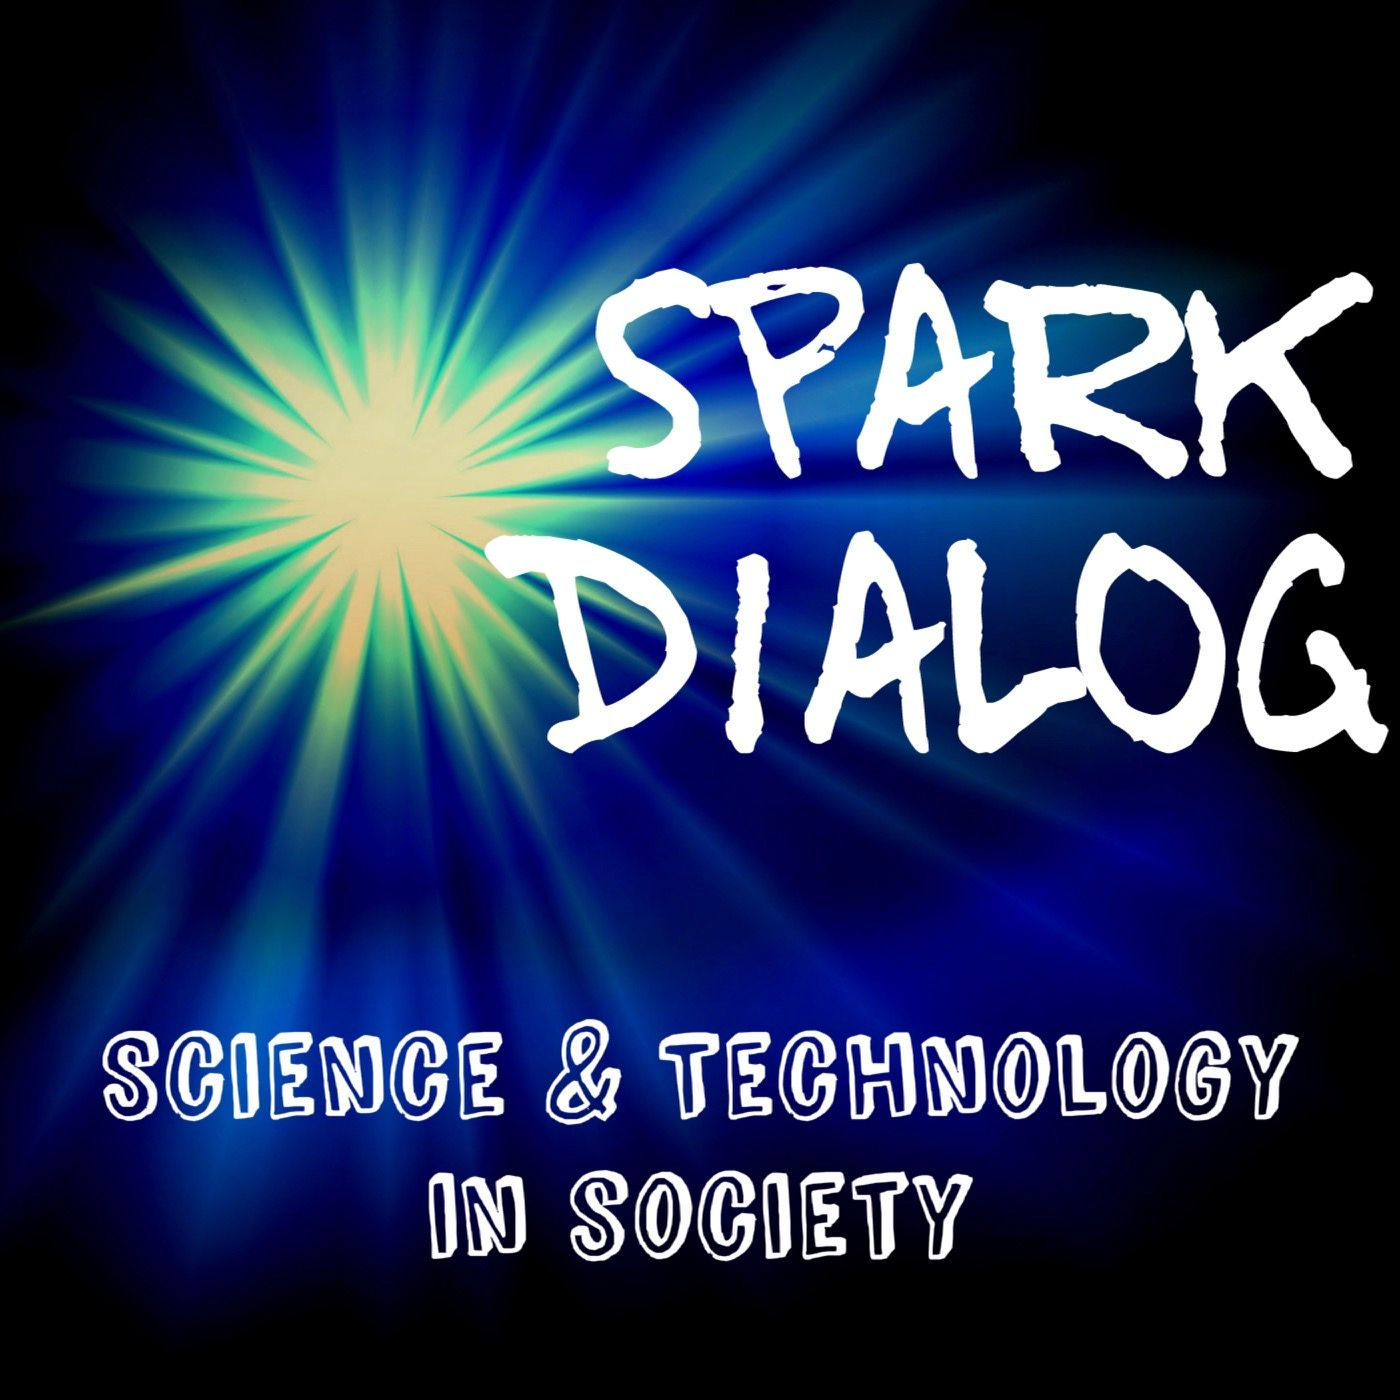 SparkDialog Podcasts